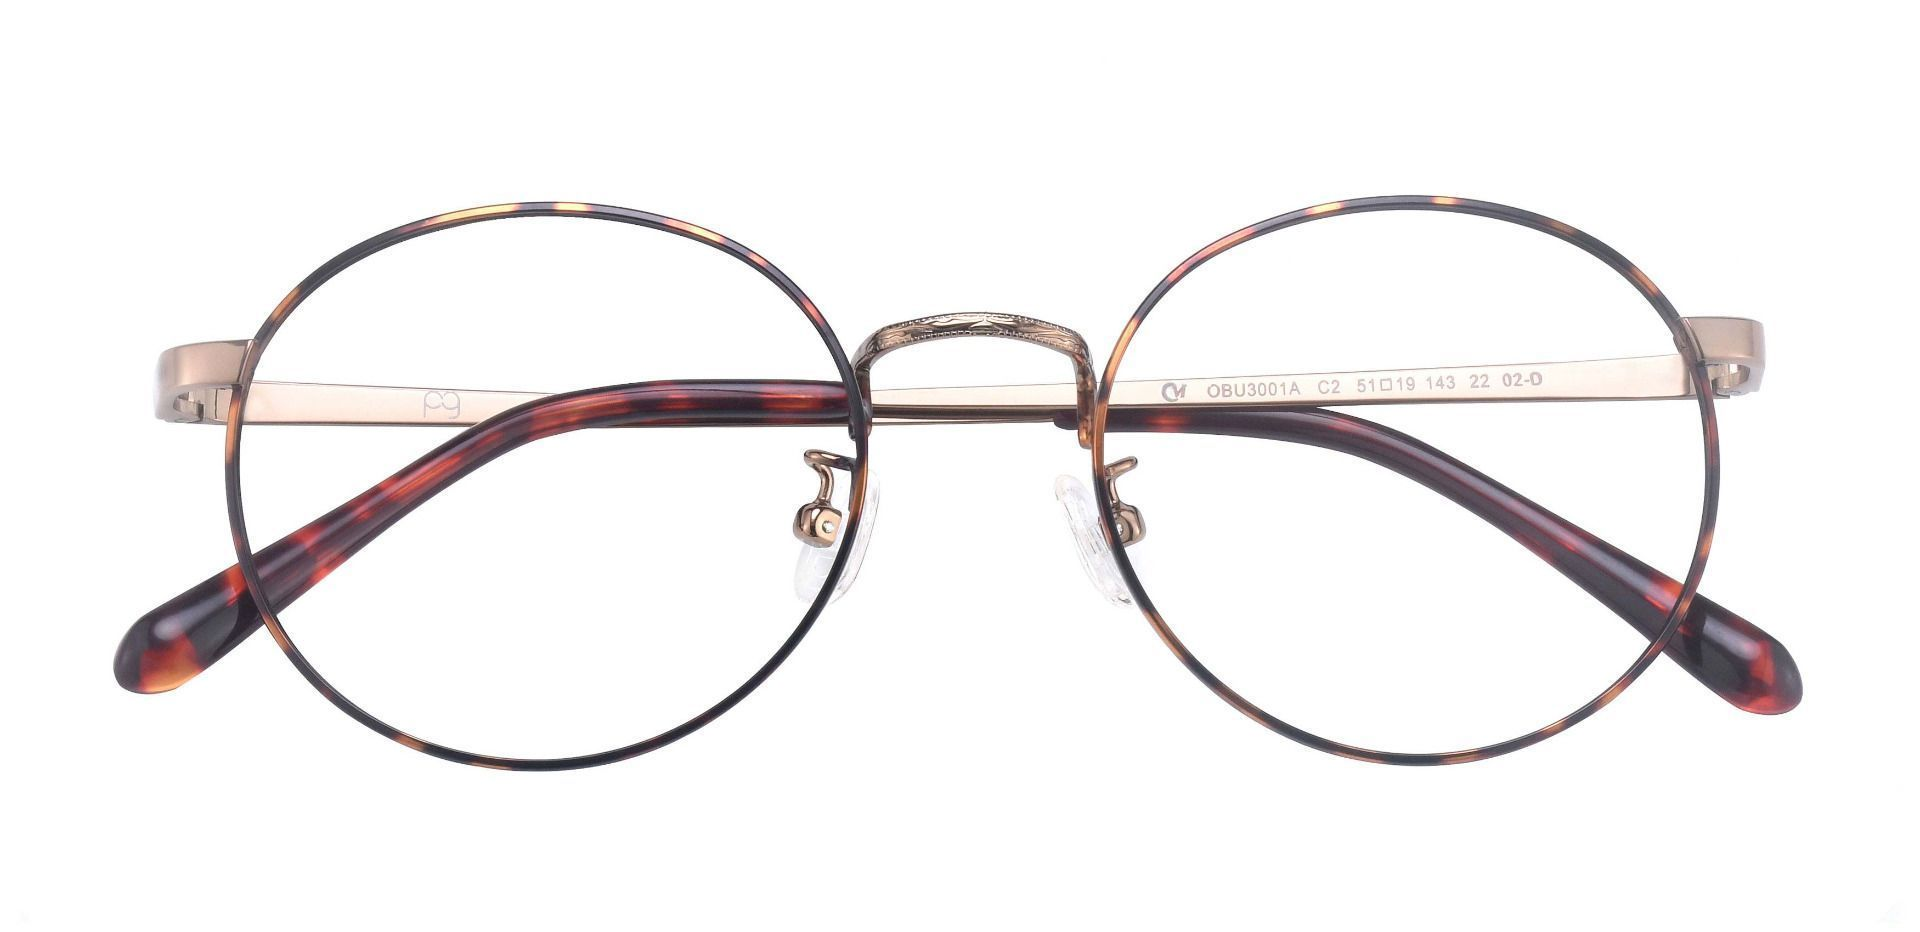 Cormac Oval Prescription Glasses - Tortoise/antique Gold